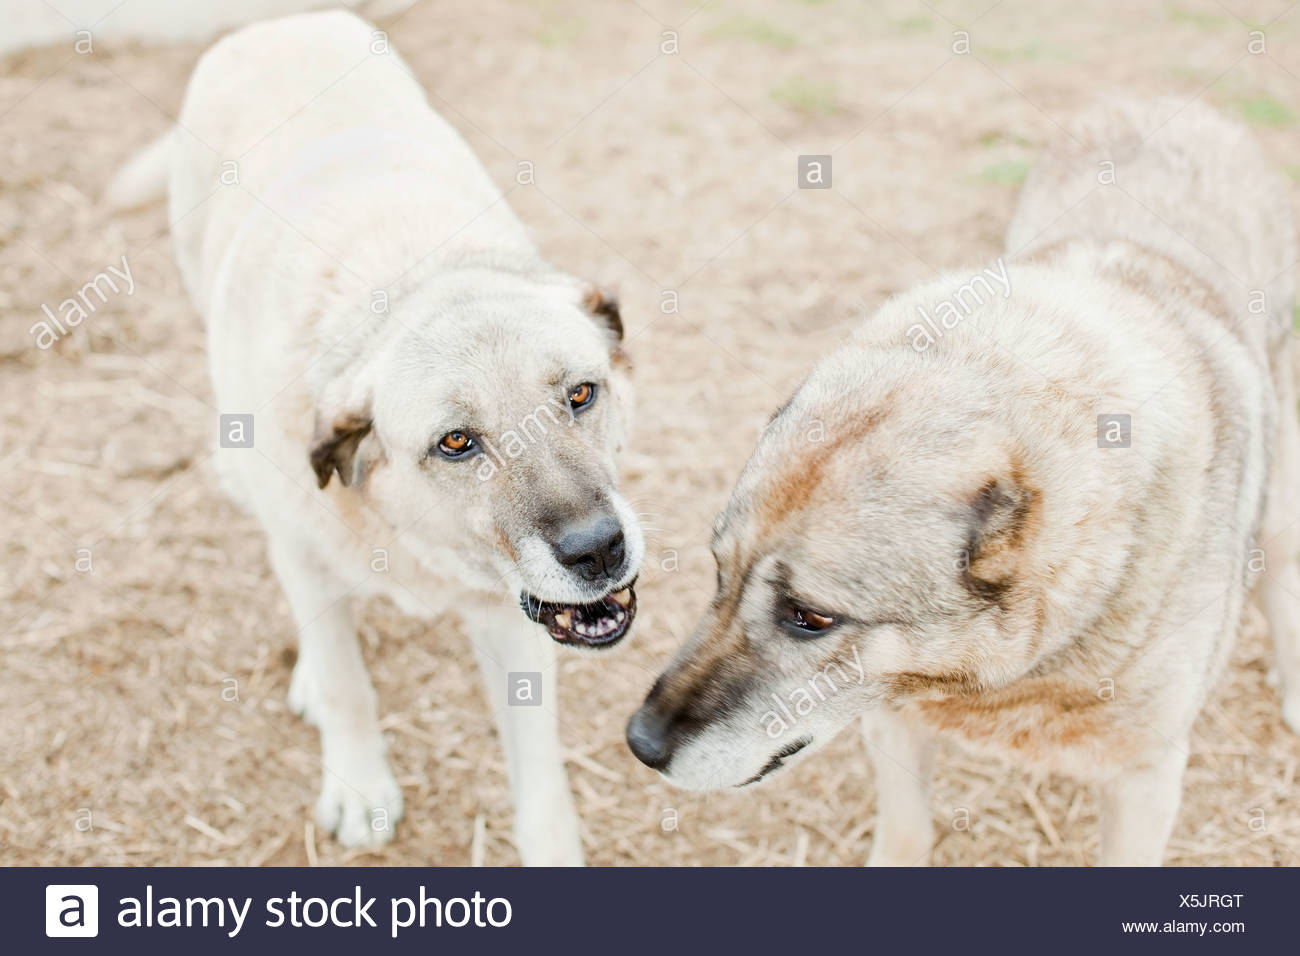 Two dogs on a farm - Stock Image